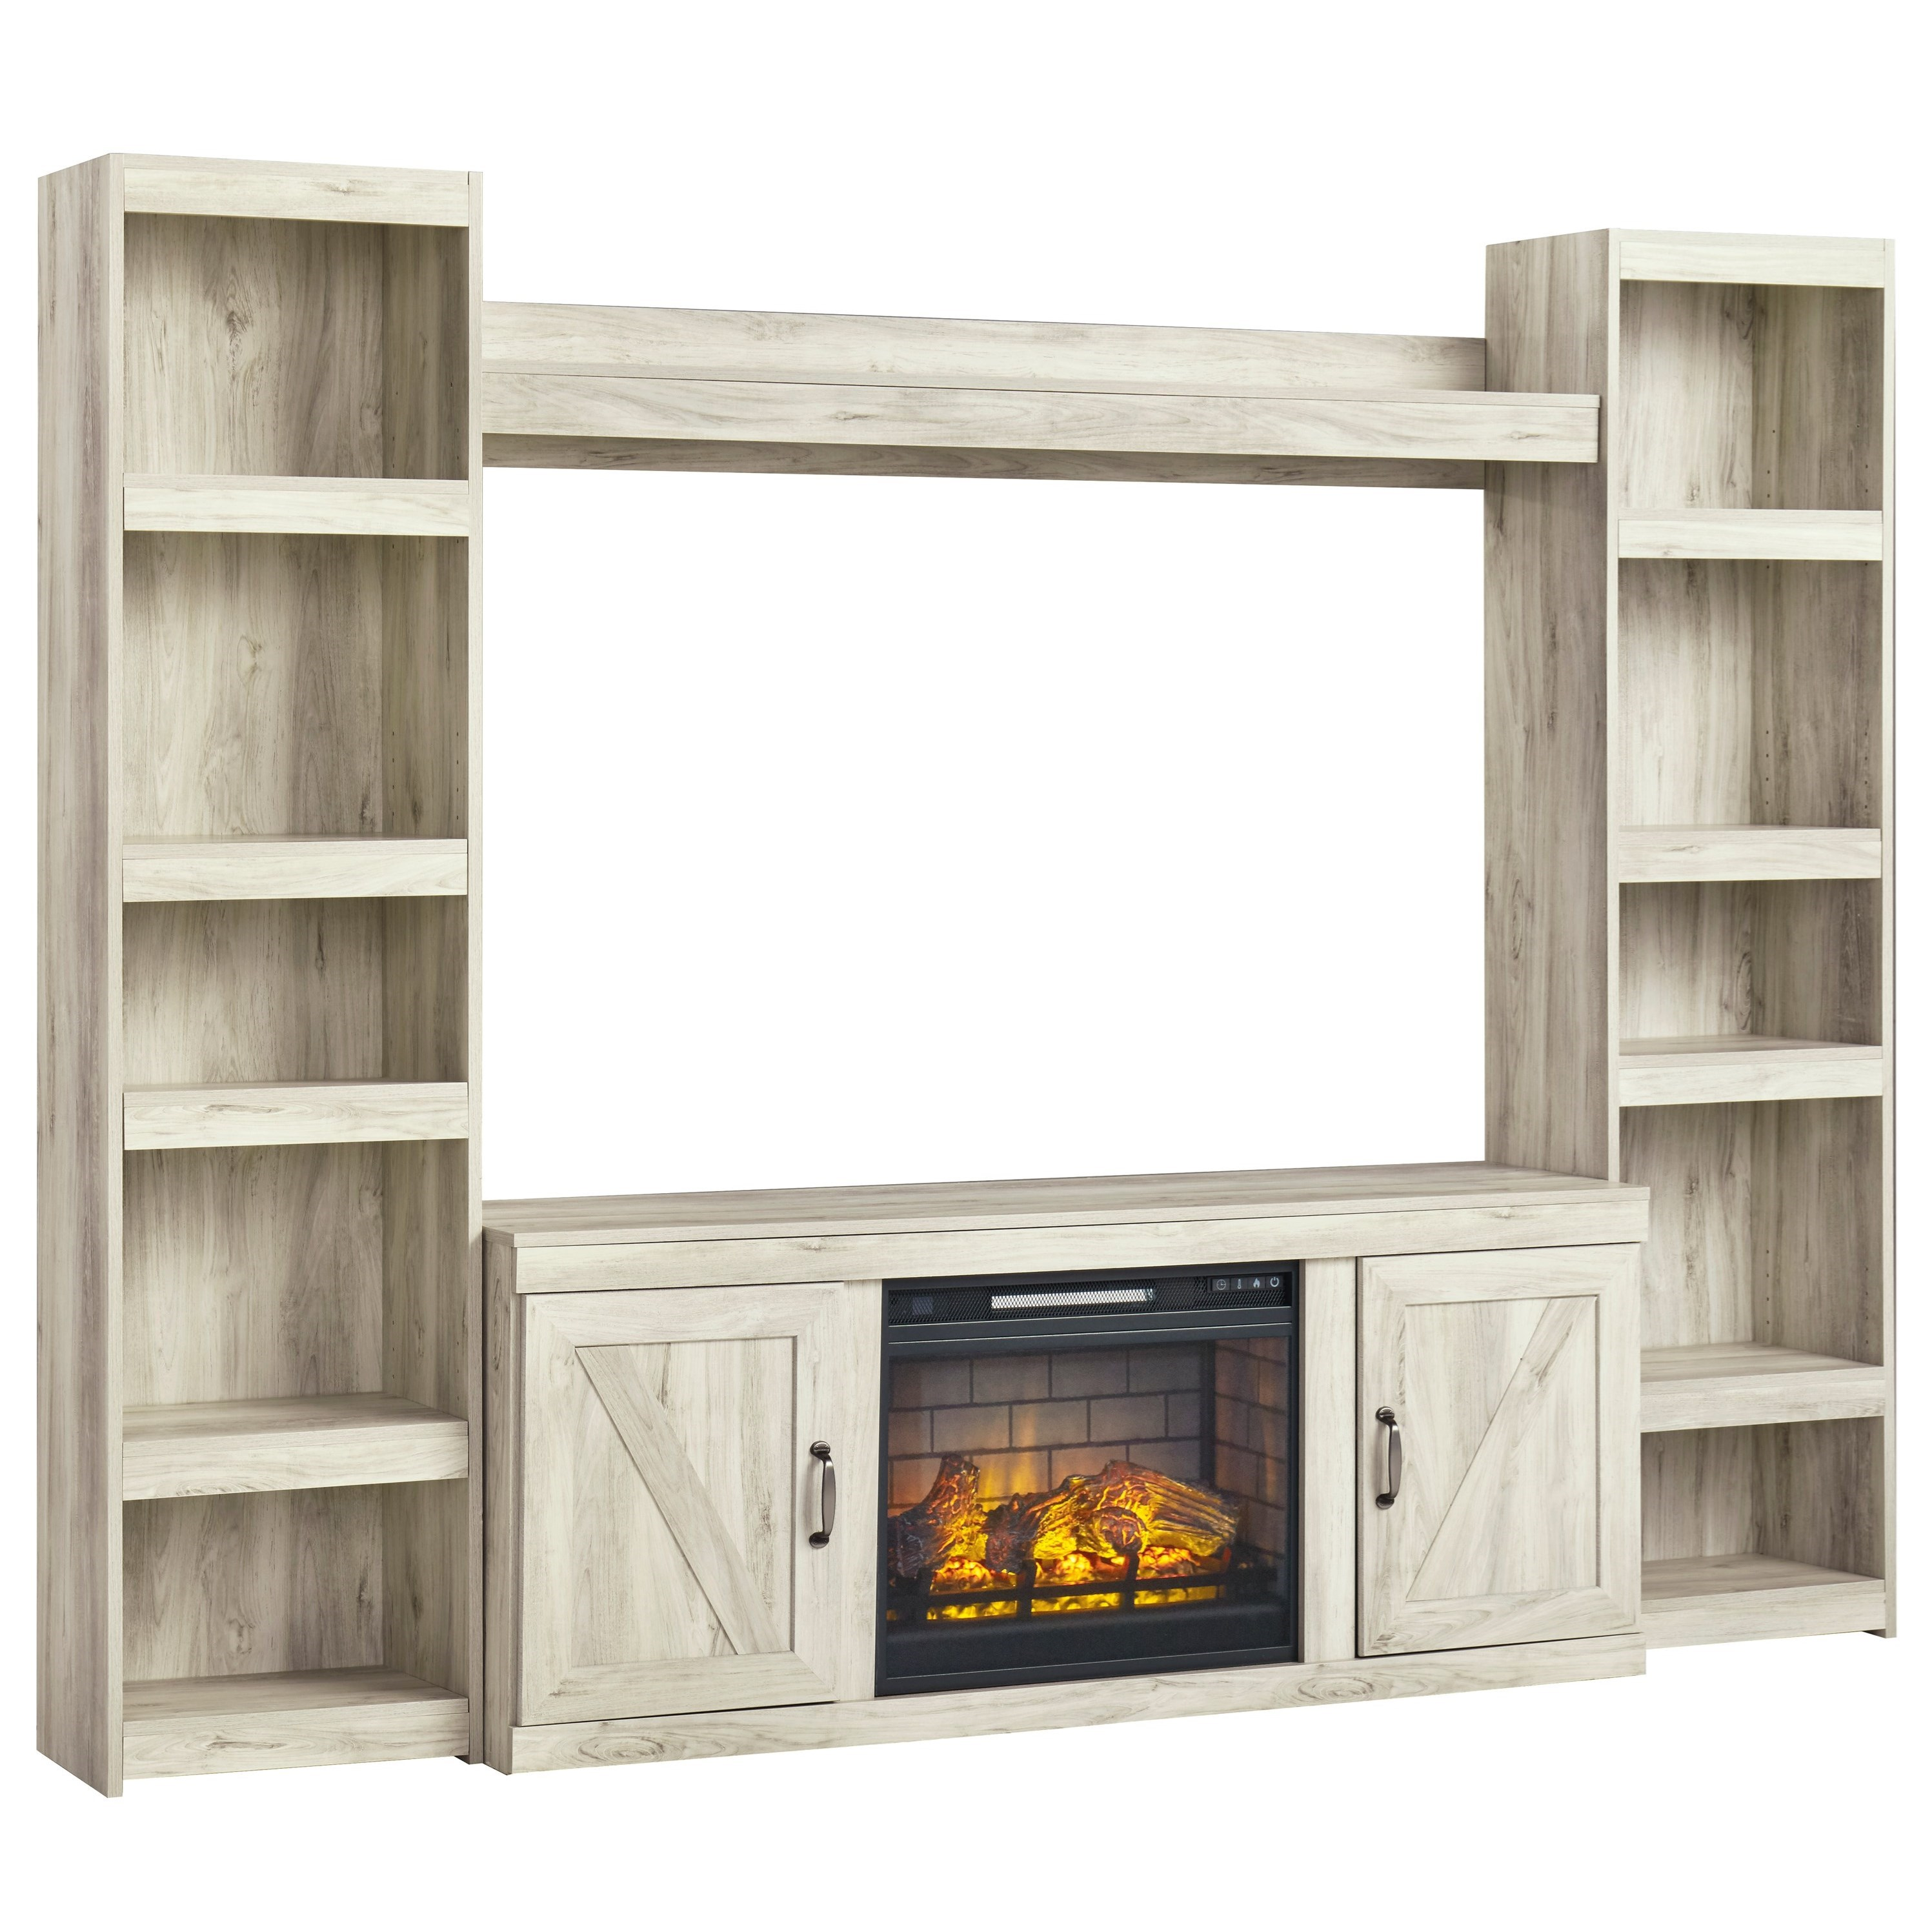 Bellaby TV Stand w/ Fireplace, Piers, & Bridge by Signature Design by Ashley at Rife's Home Furniture